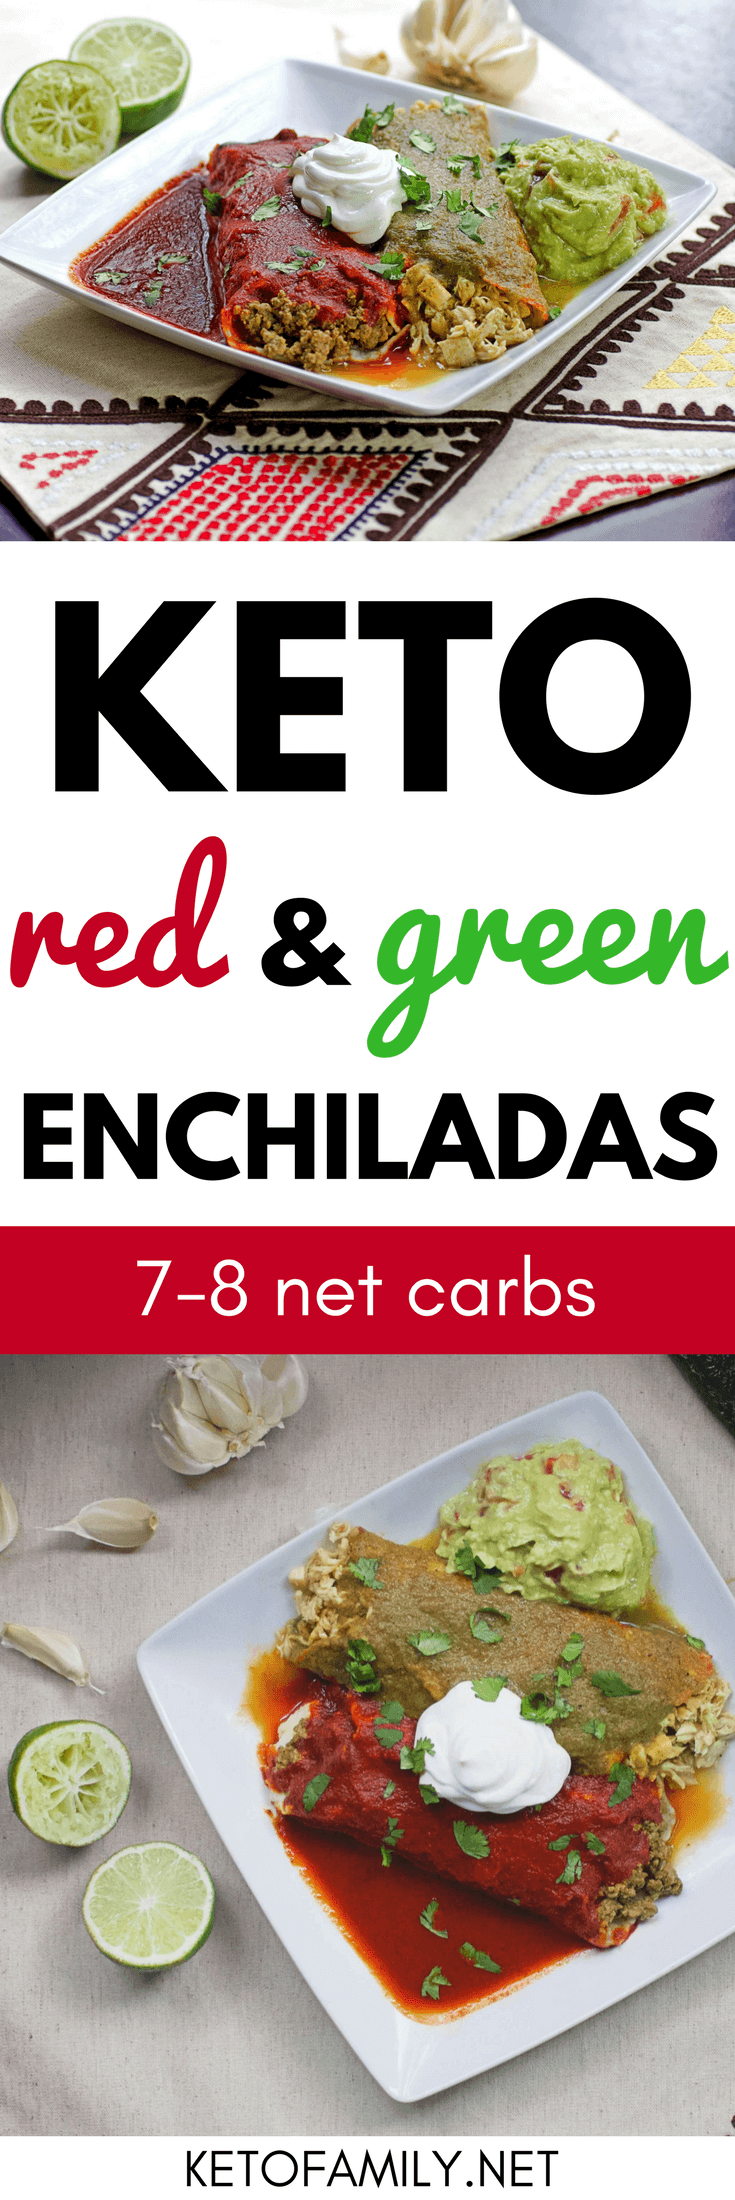 Craving the taste of homemade Mexican food without all the carbs? These keto red and green enchiladas are big on flavor (and family friendly) while fitting your macros.